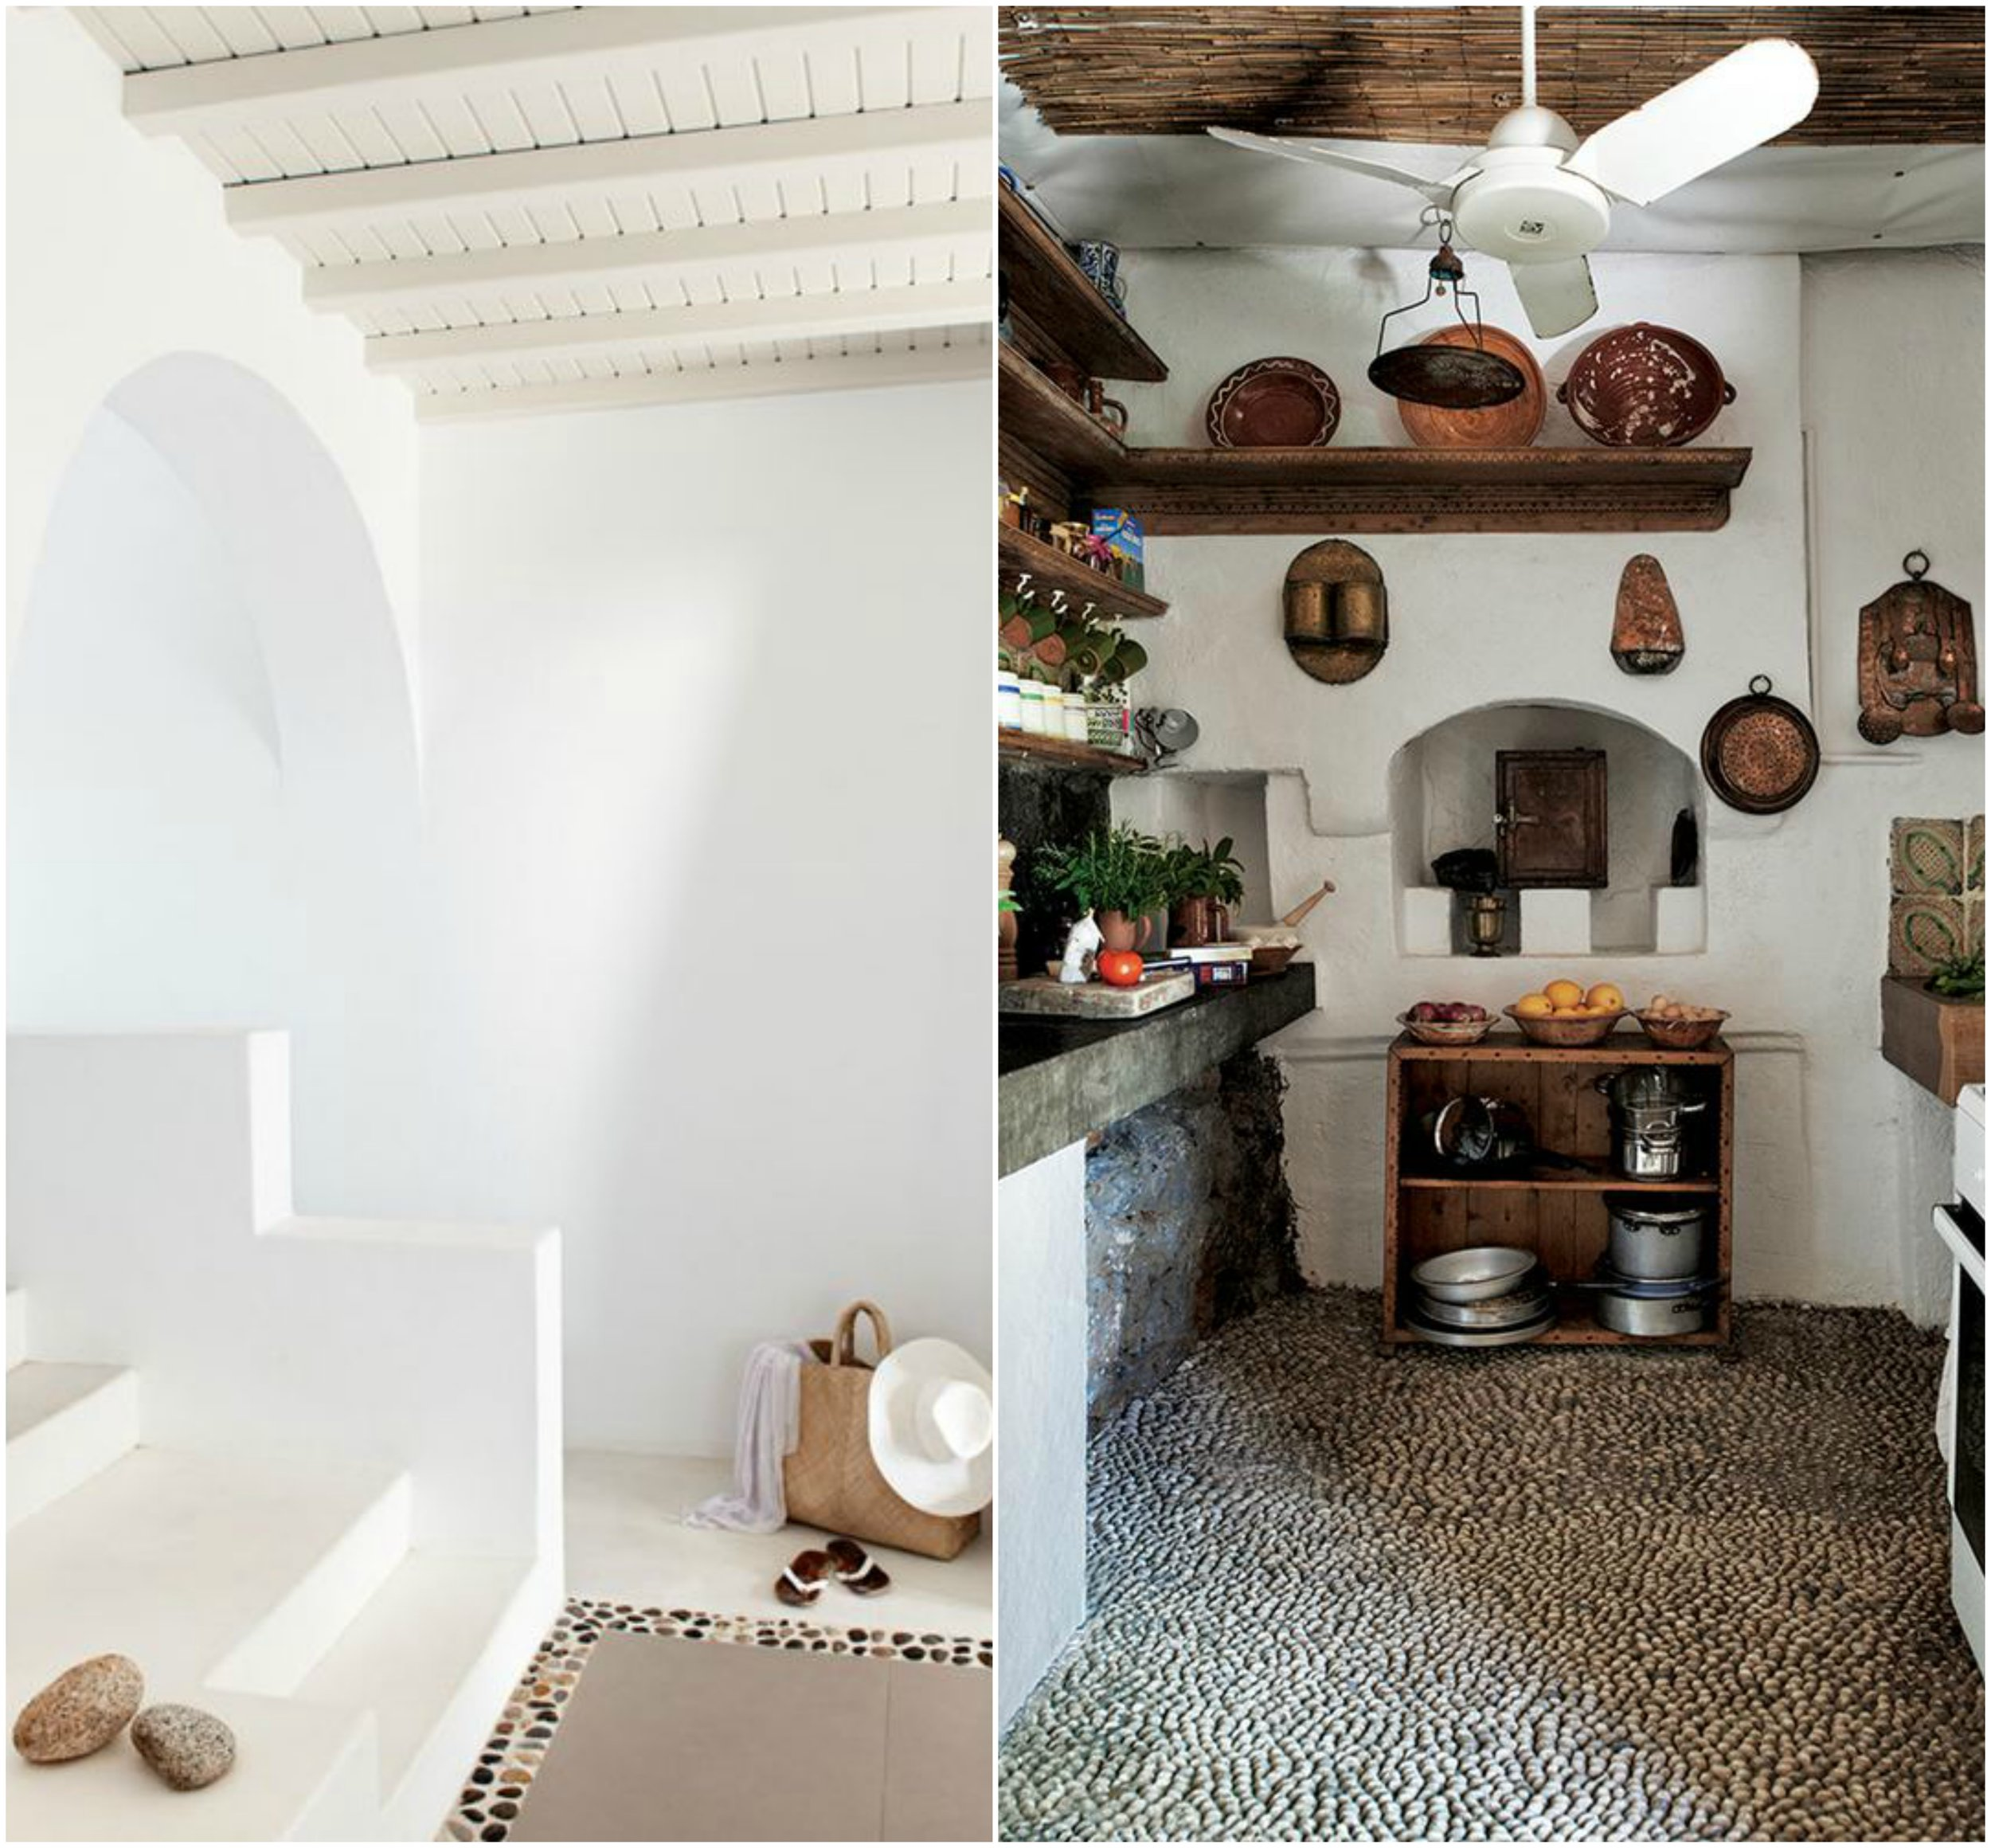 Pebbles are used as floor in greek style interiors.